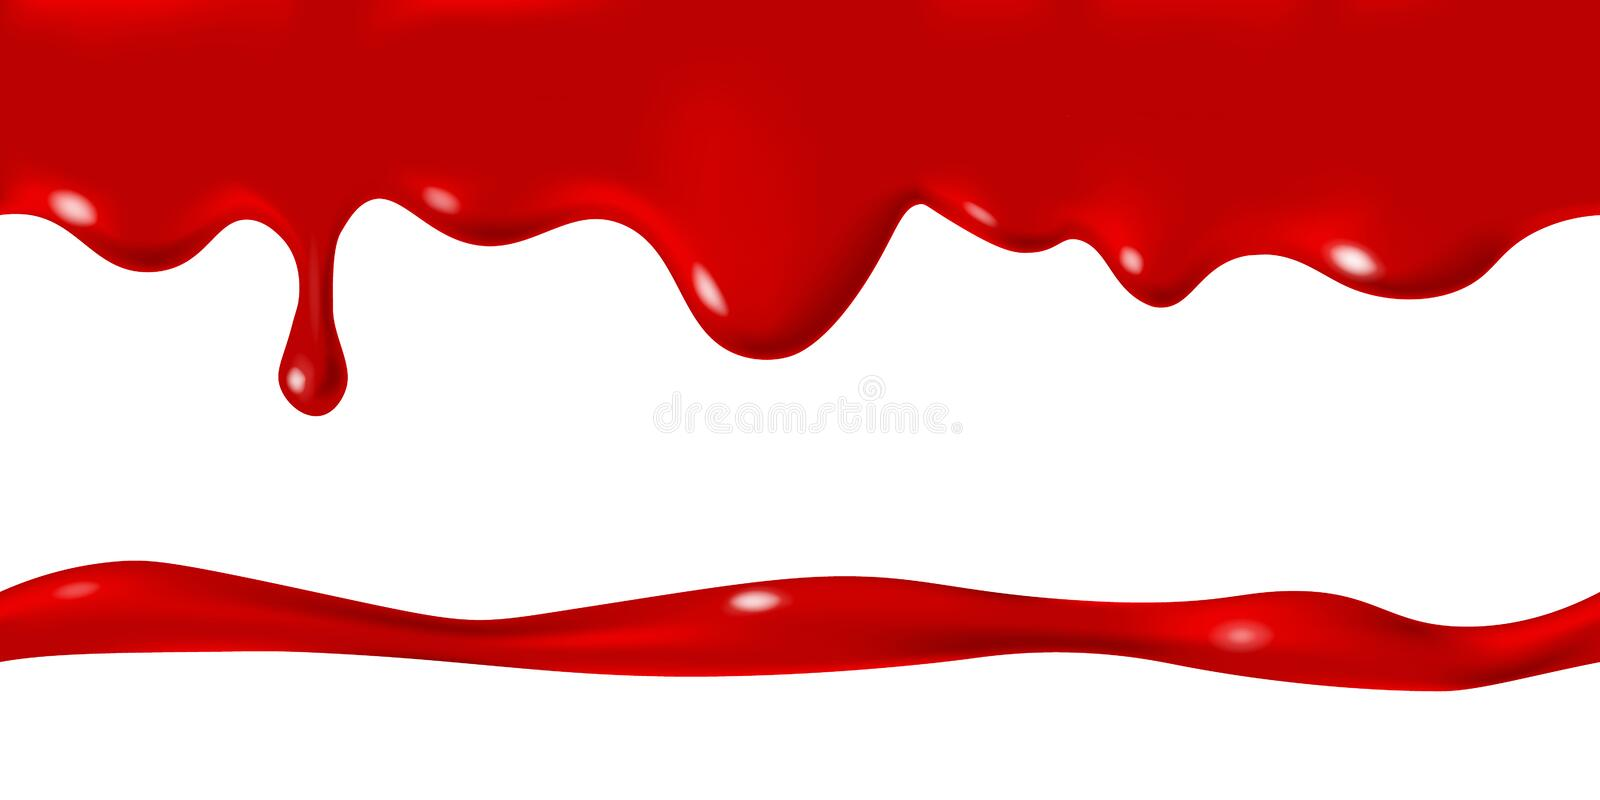 Seamless border of white milk cream drops. Seamless dripping red blood drops, Halloween concept. Vector paint stain illustration for background design. Realistic stock illustration